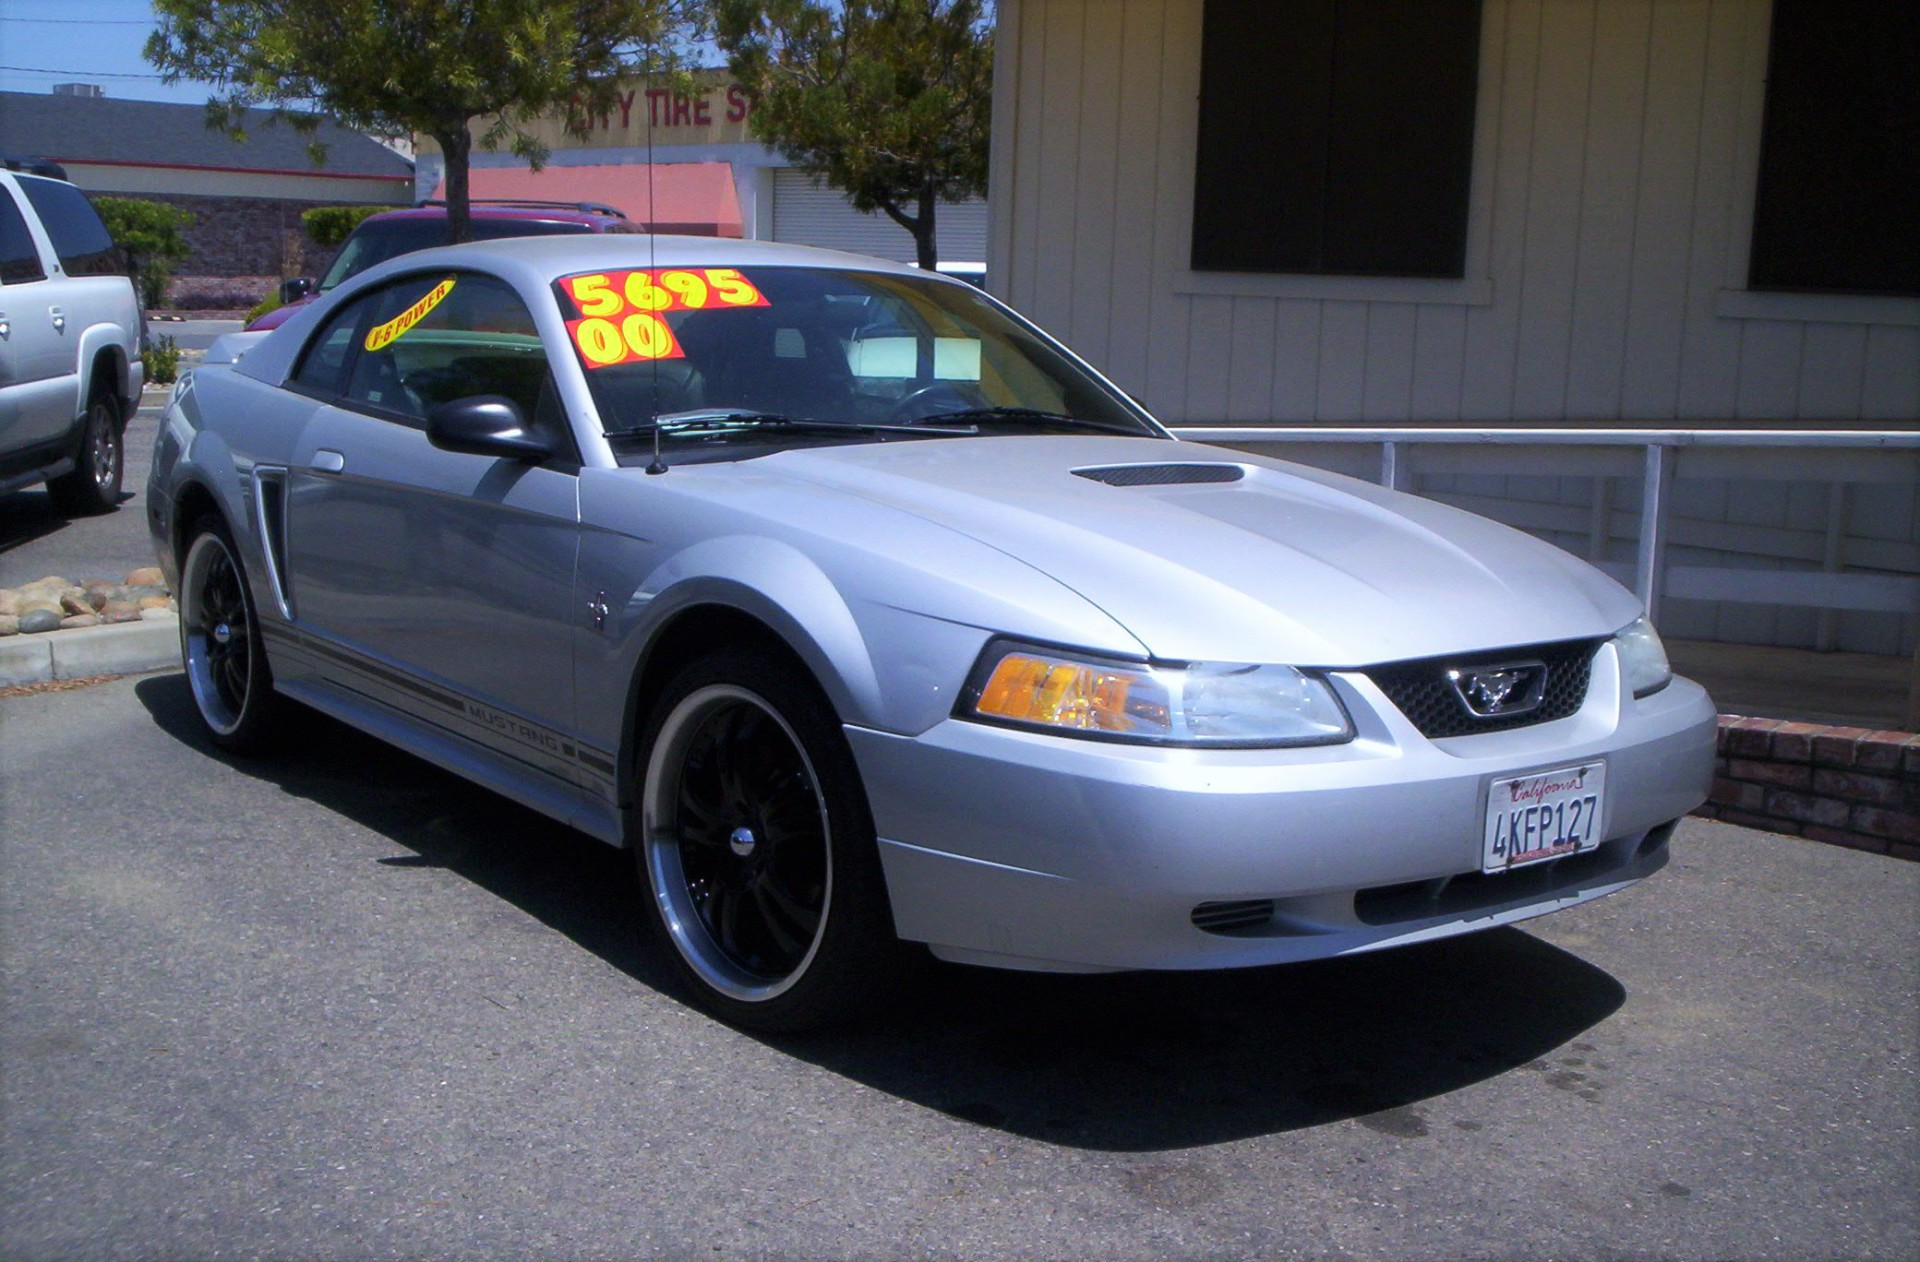 2000 Ford Mustang - $5,695